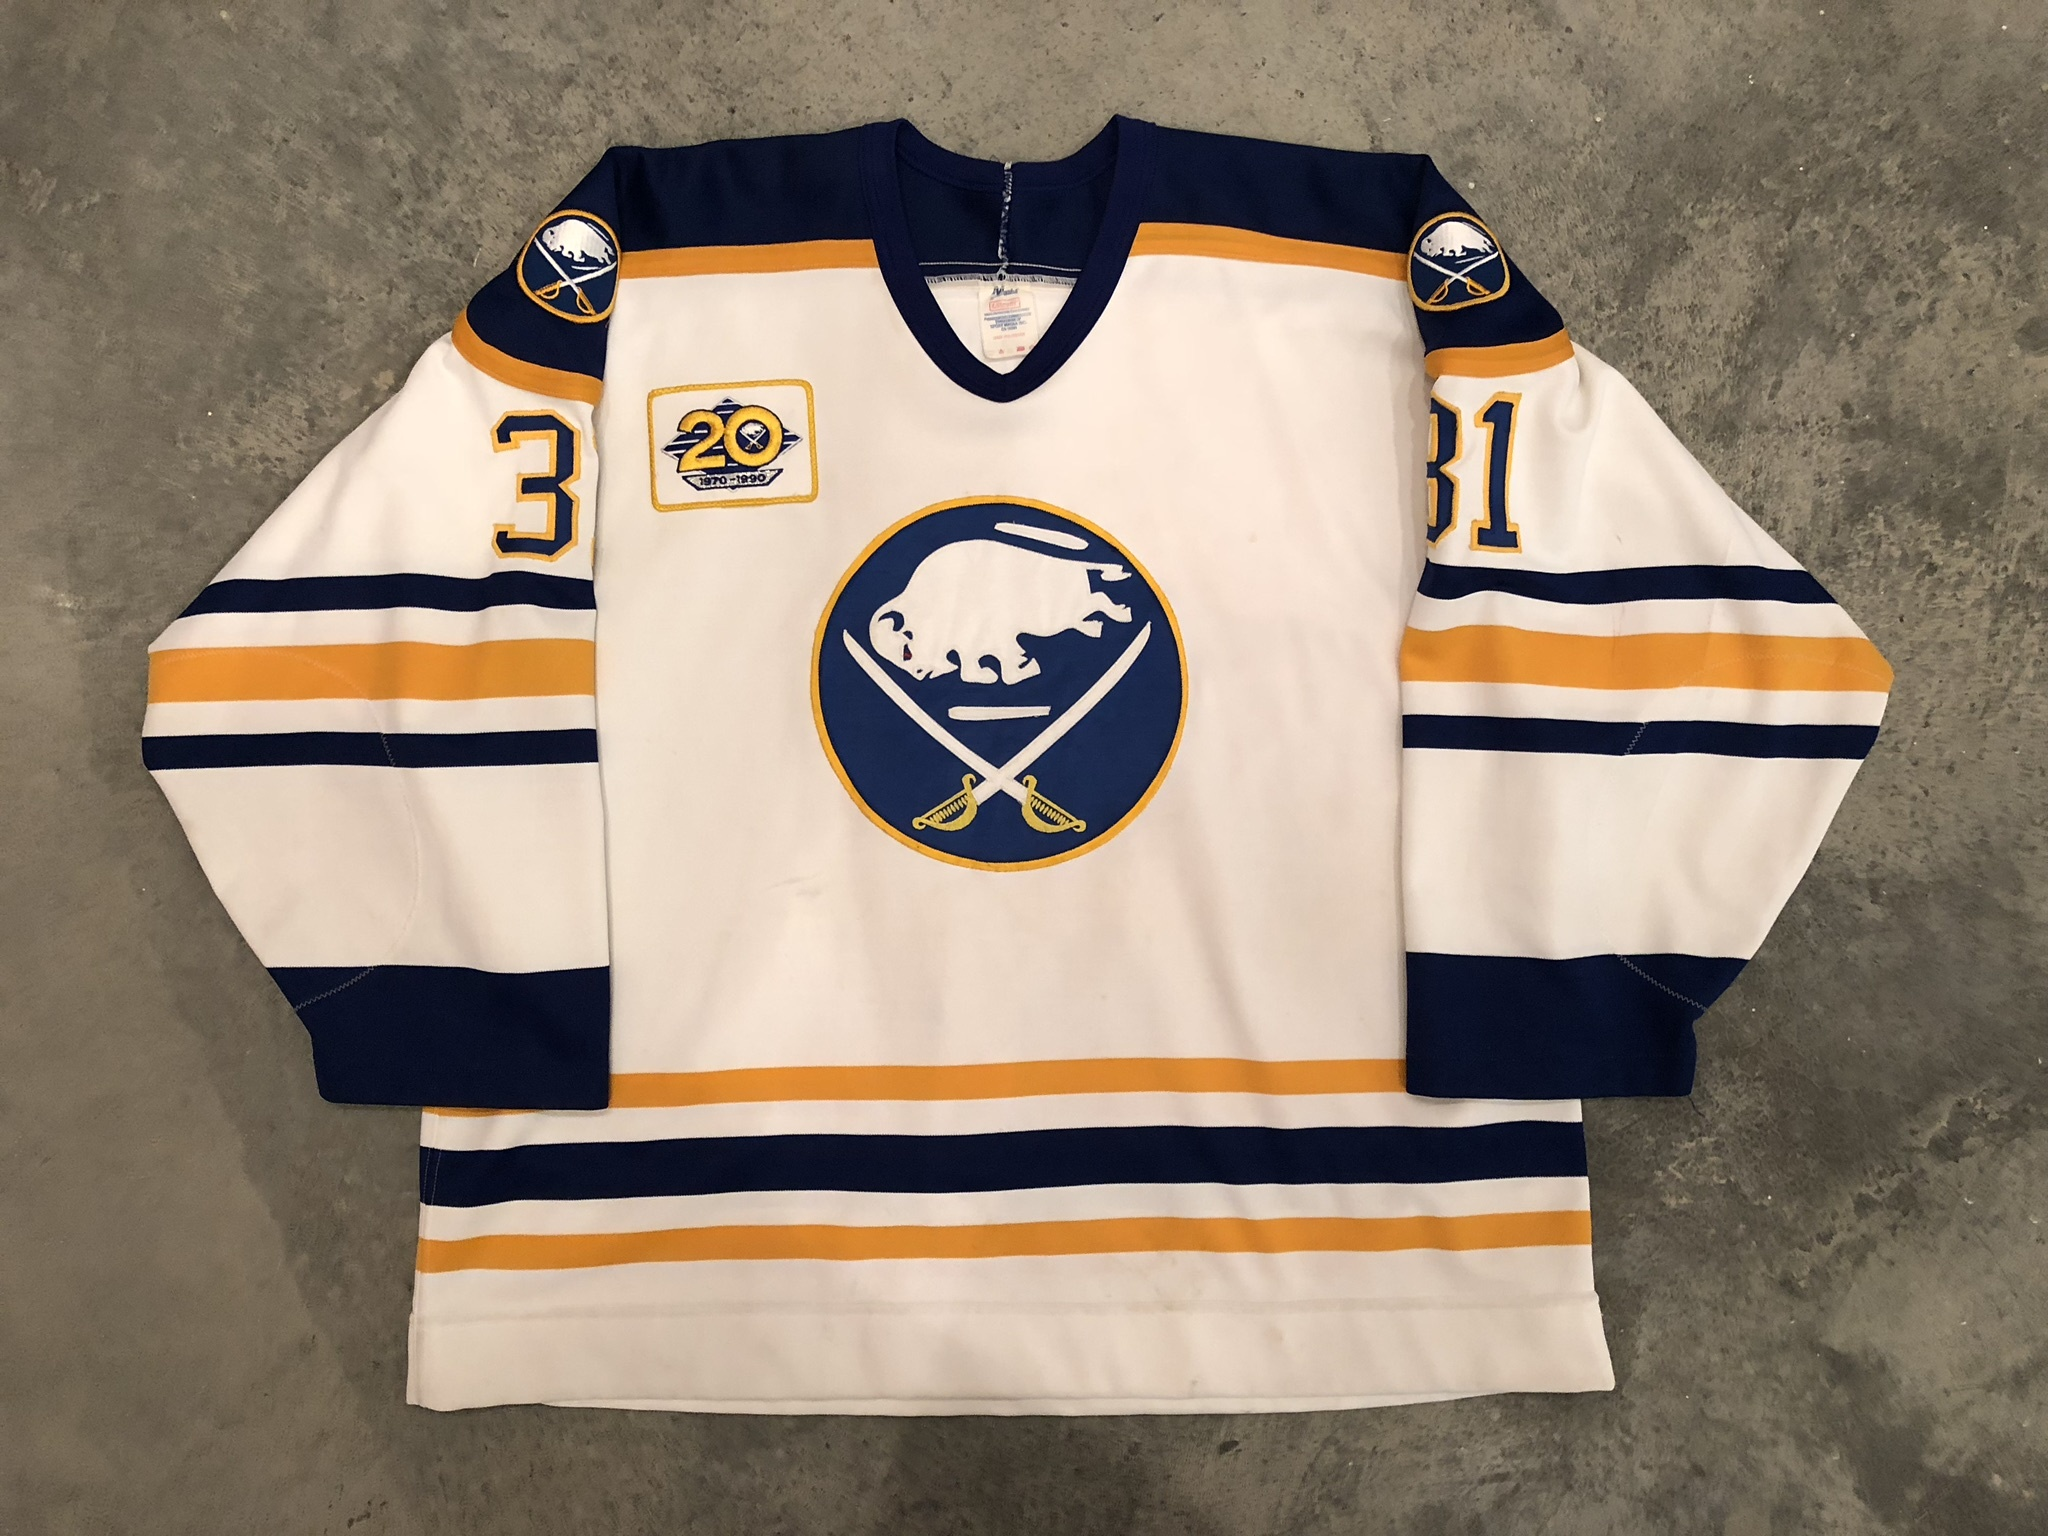 1989-90 Darren Puppa game worn home jersey with Sabres 20th anniversary patch